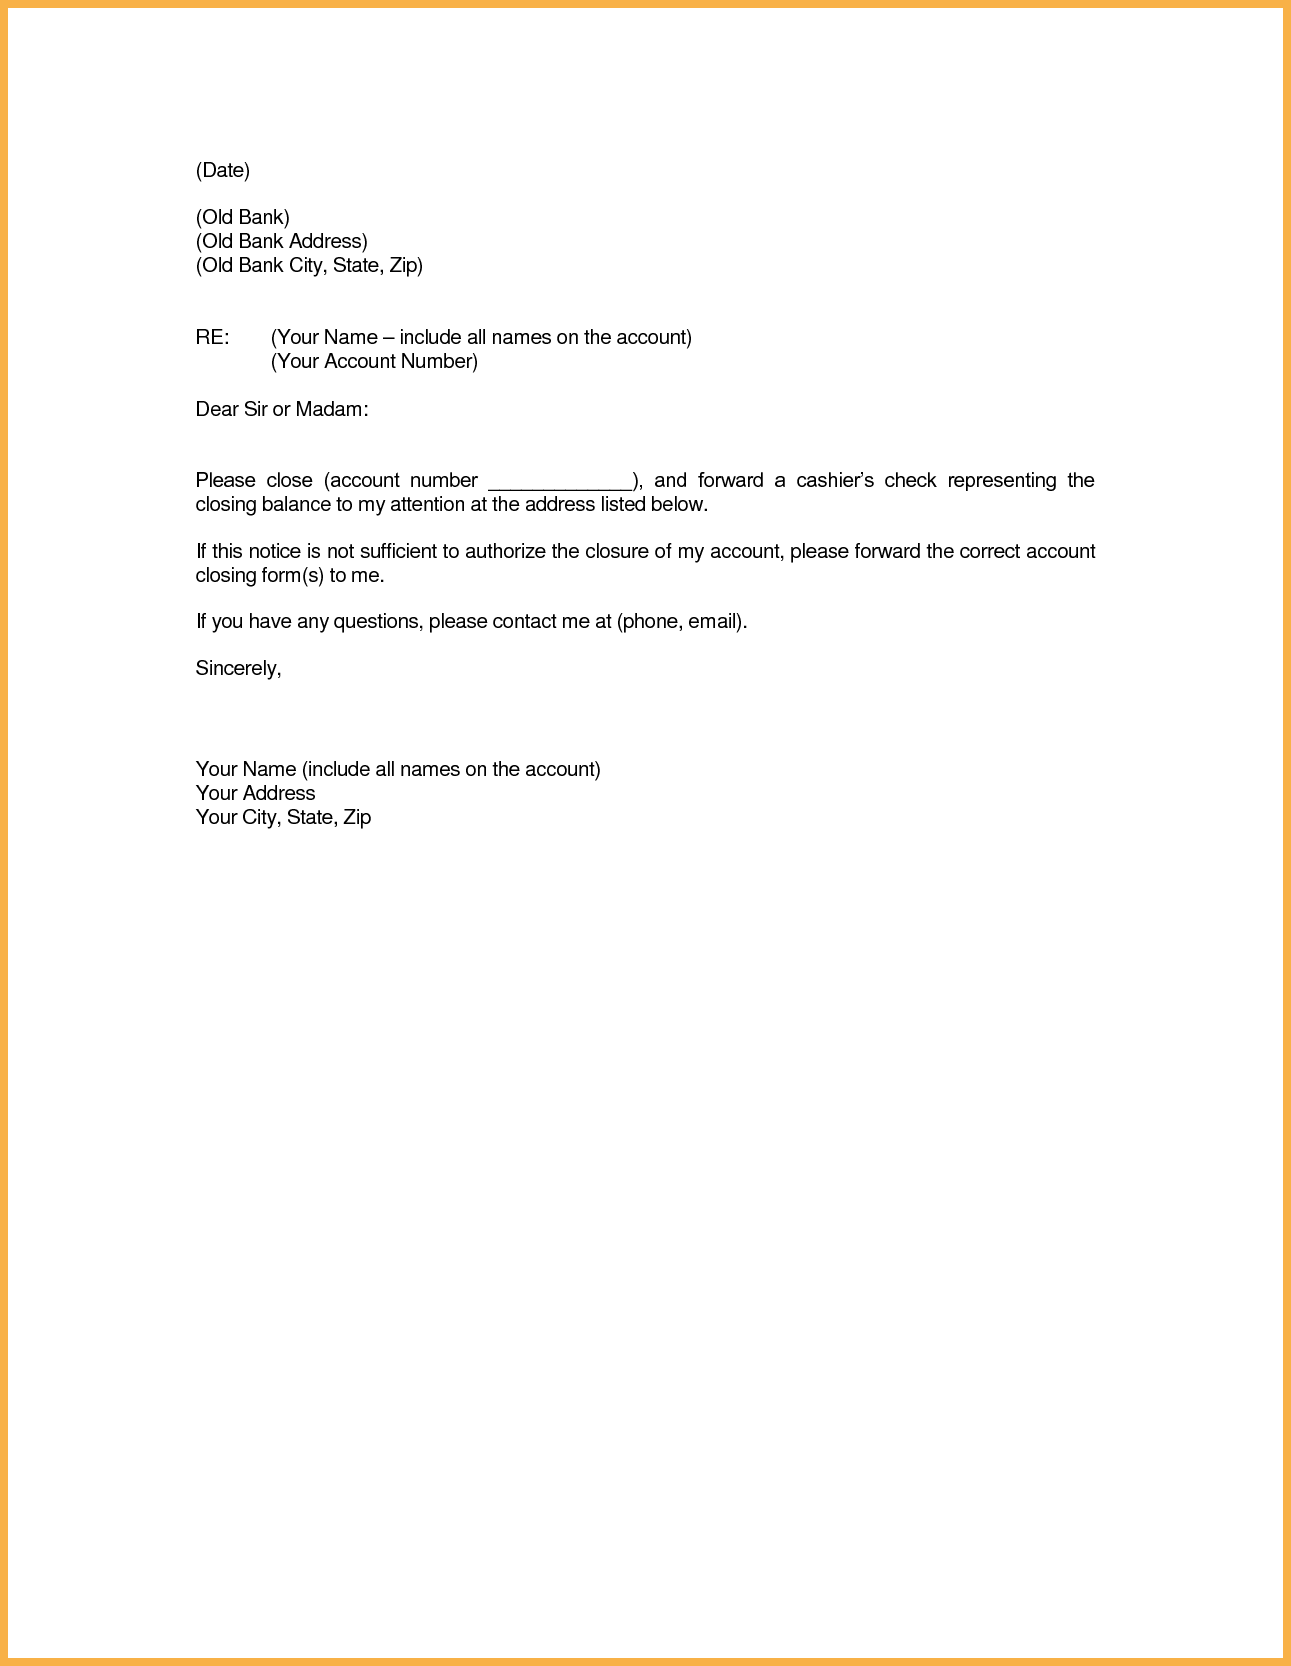 Account paid full letter close bank template closing format sample account paid full letter close bank template closing format sample cover templates spiritdancerdesigns